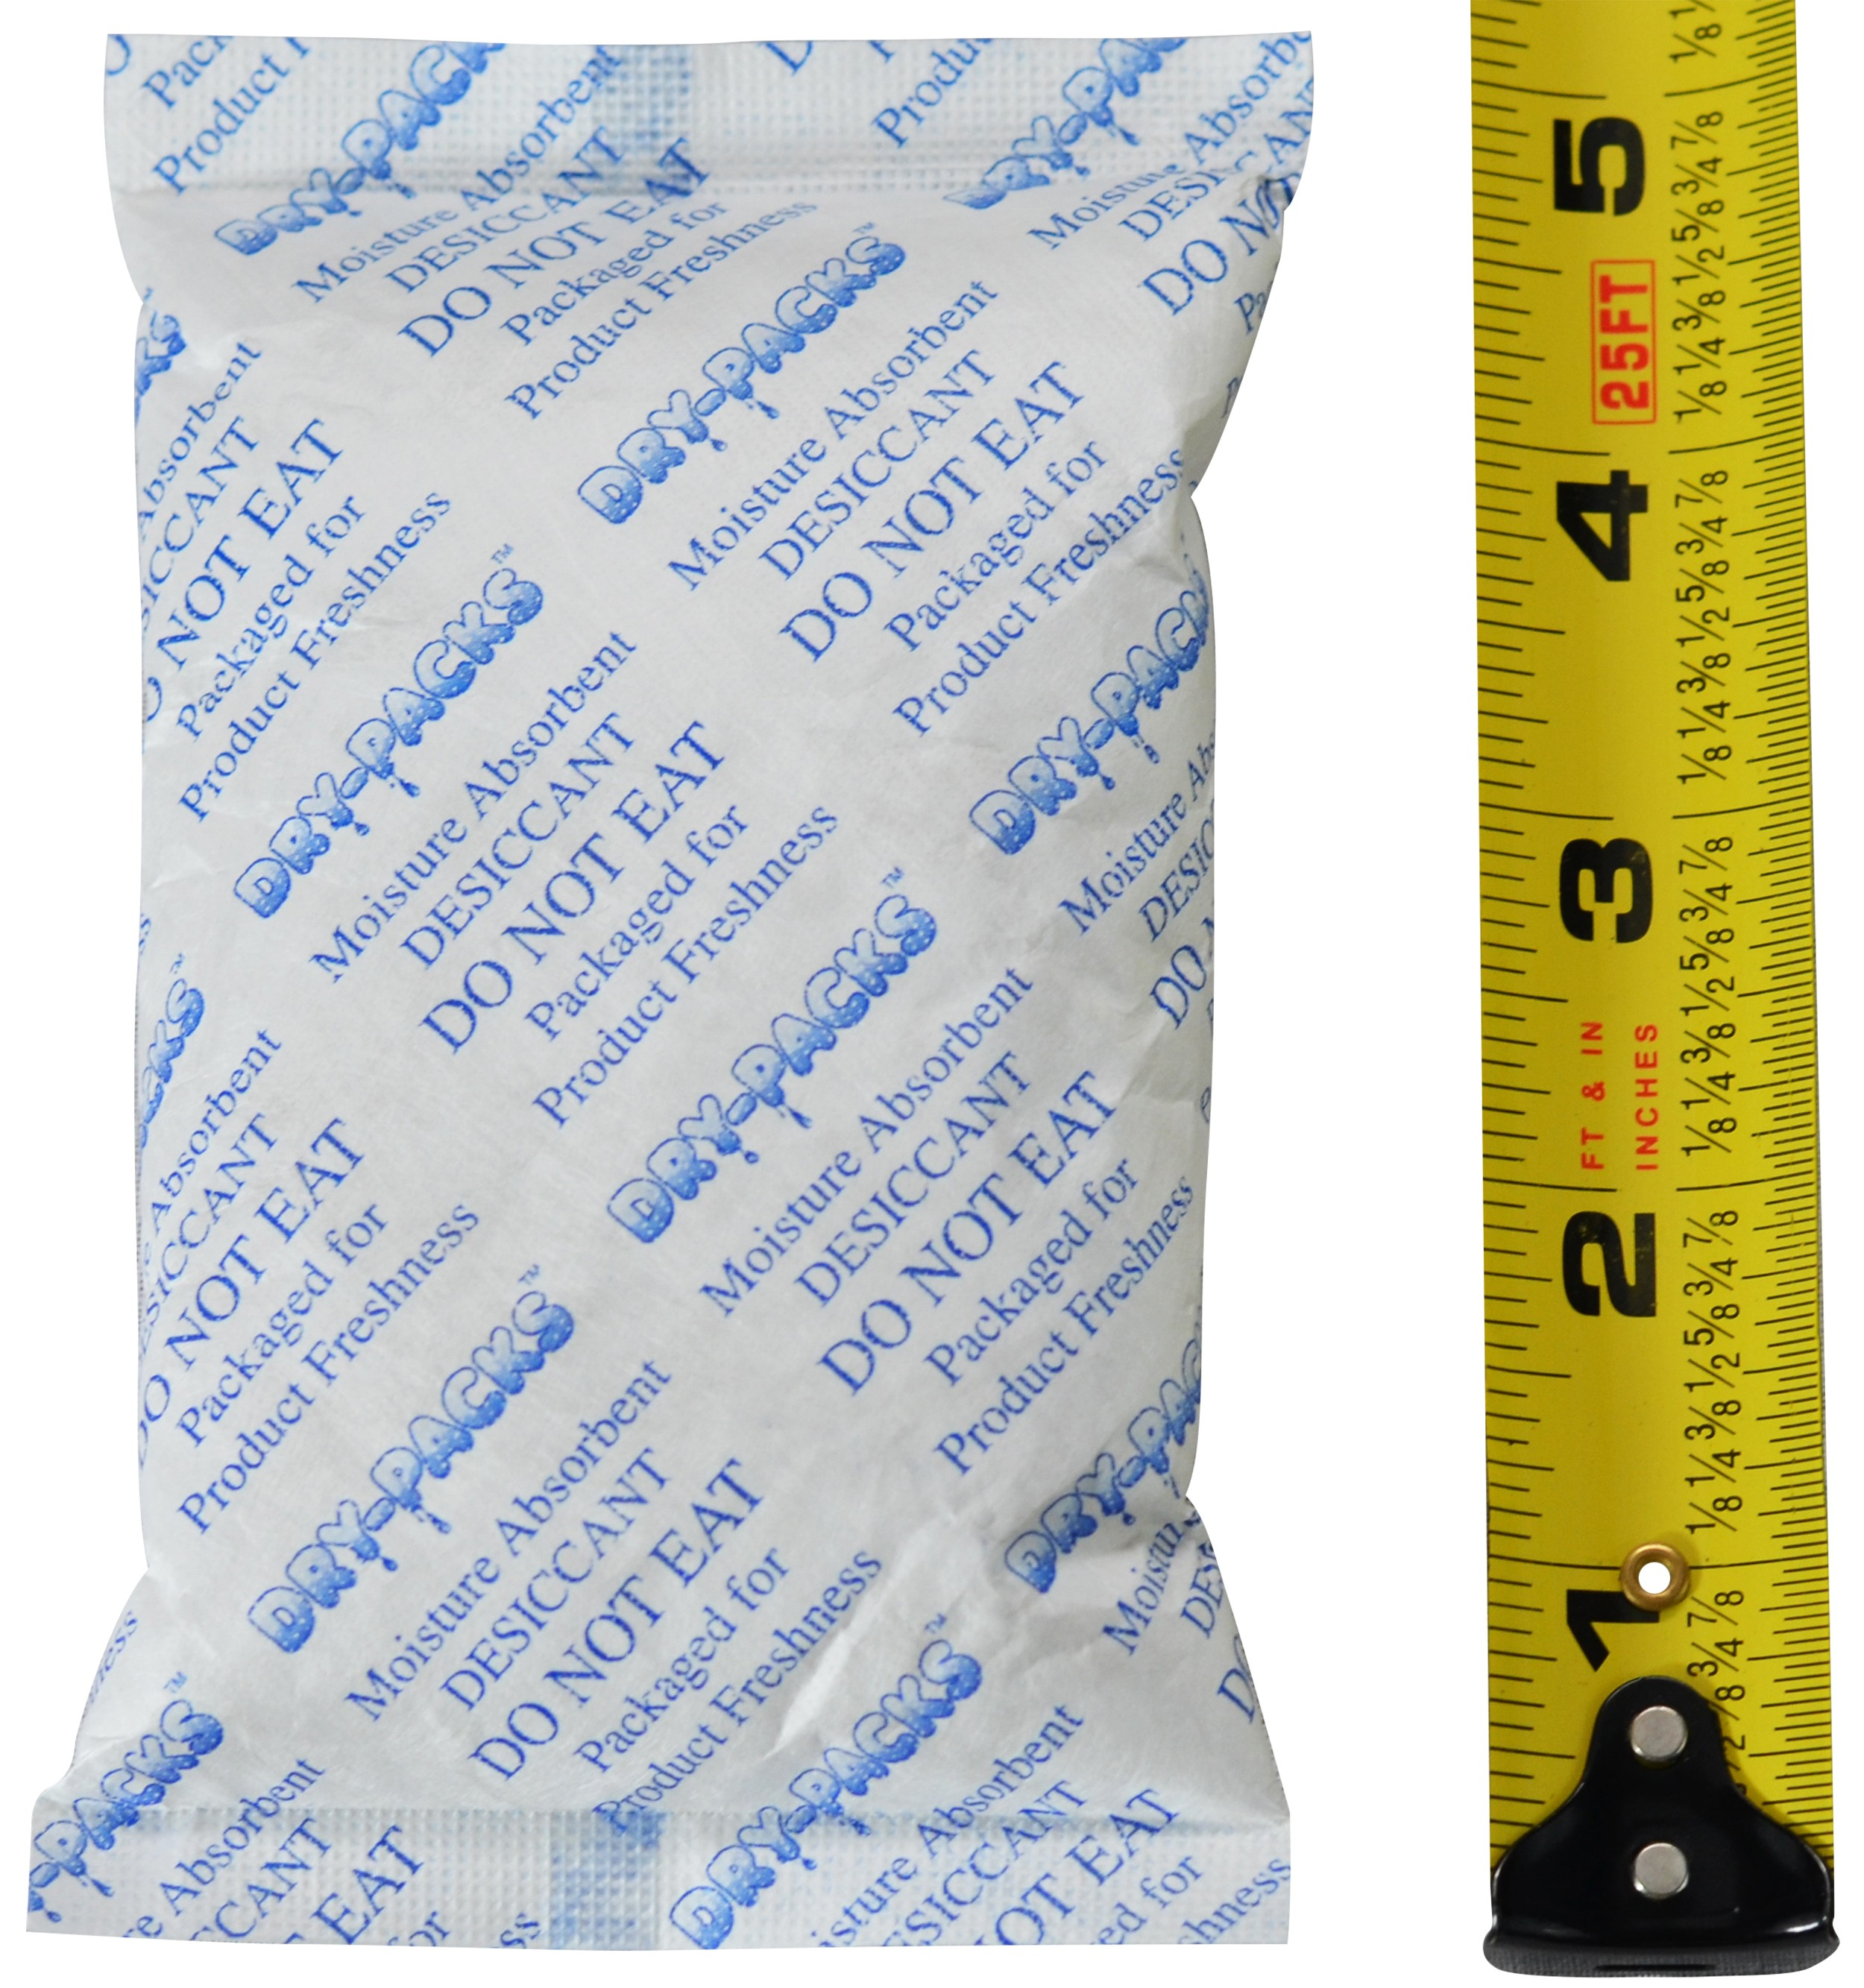 112 Gram (4 Unit) Silica Gel Packet - Tyvek